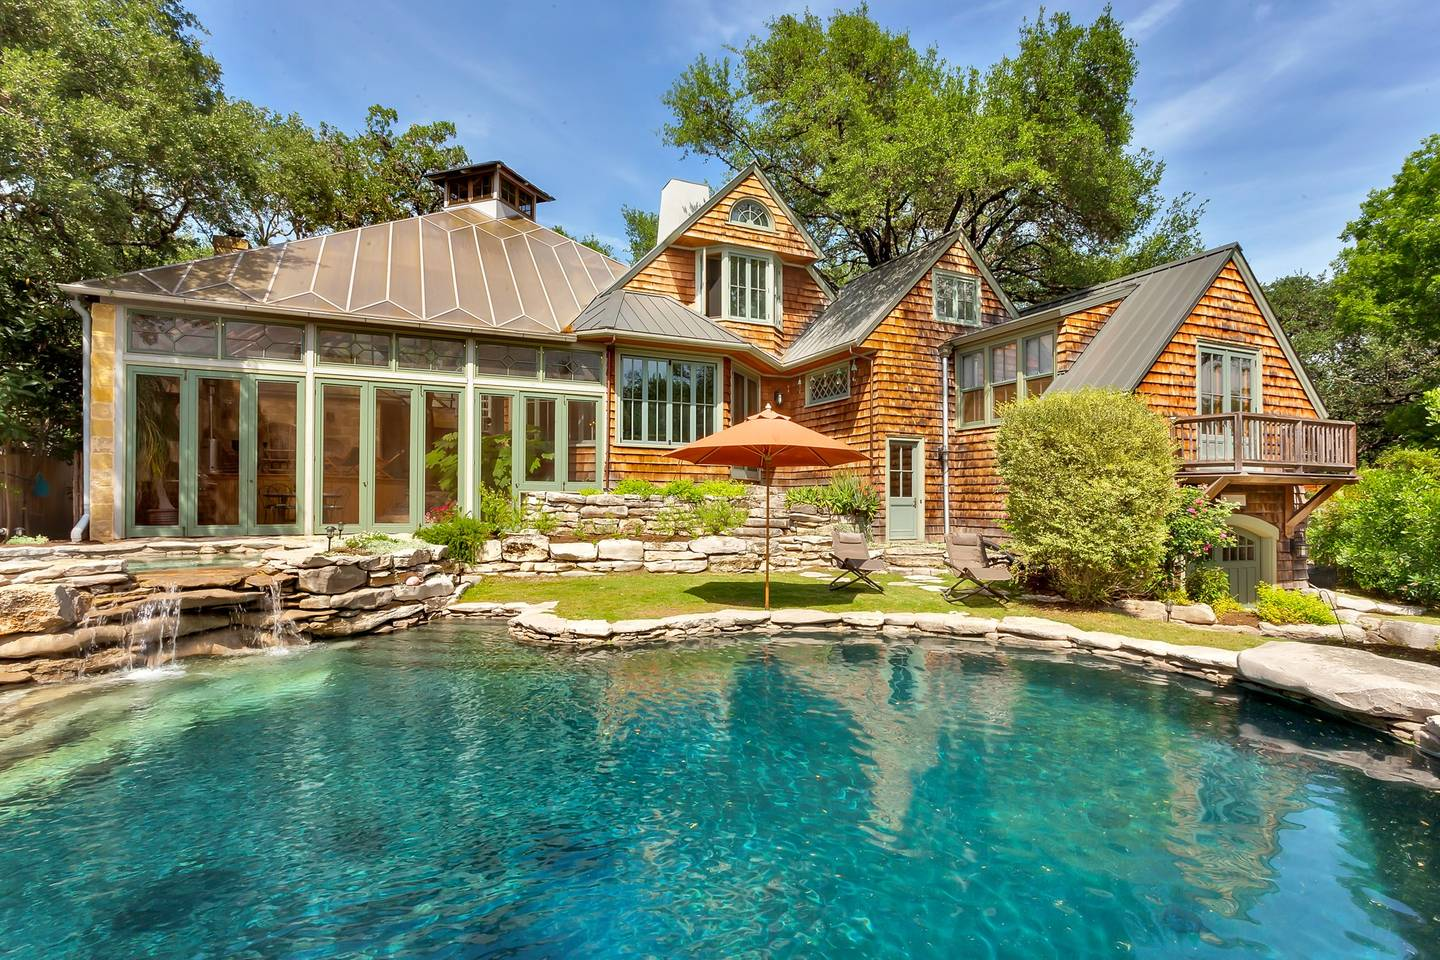 luxury home with pool airbnb tarrytown austin